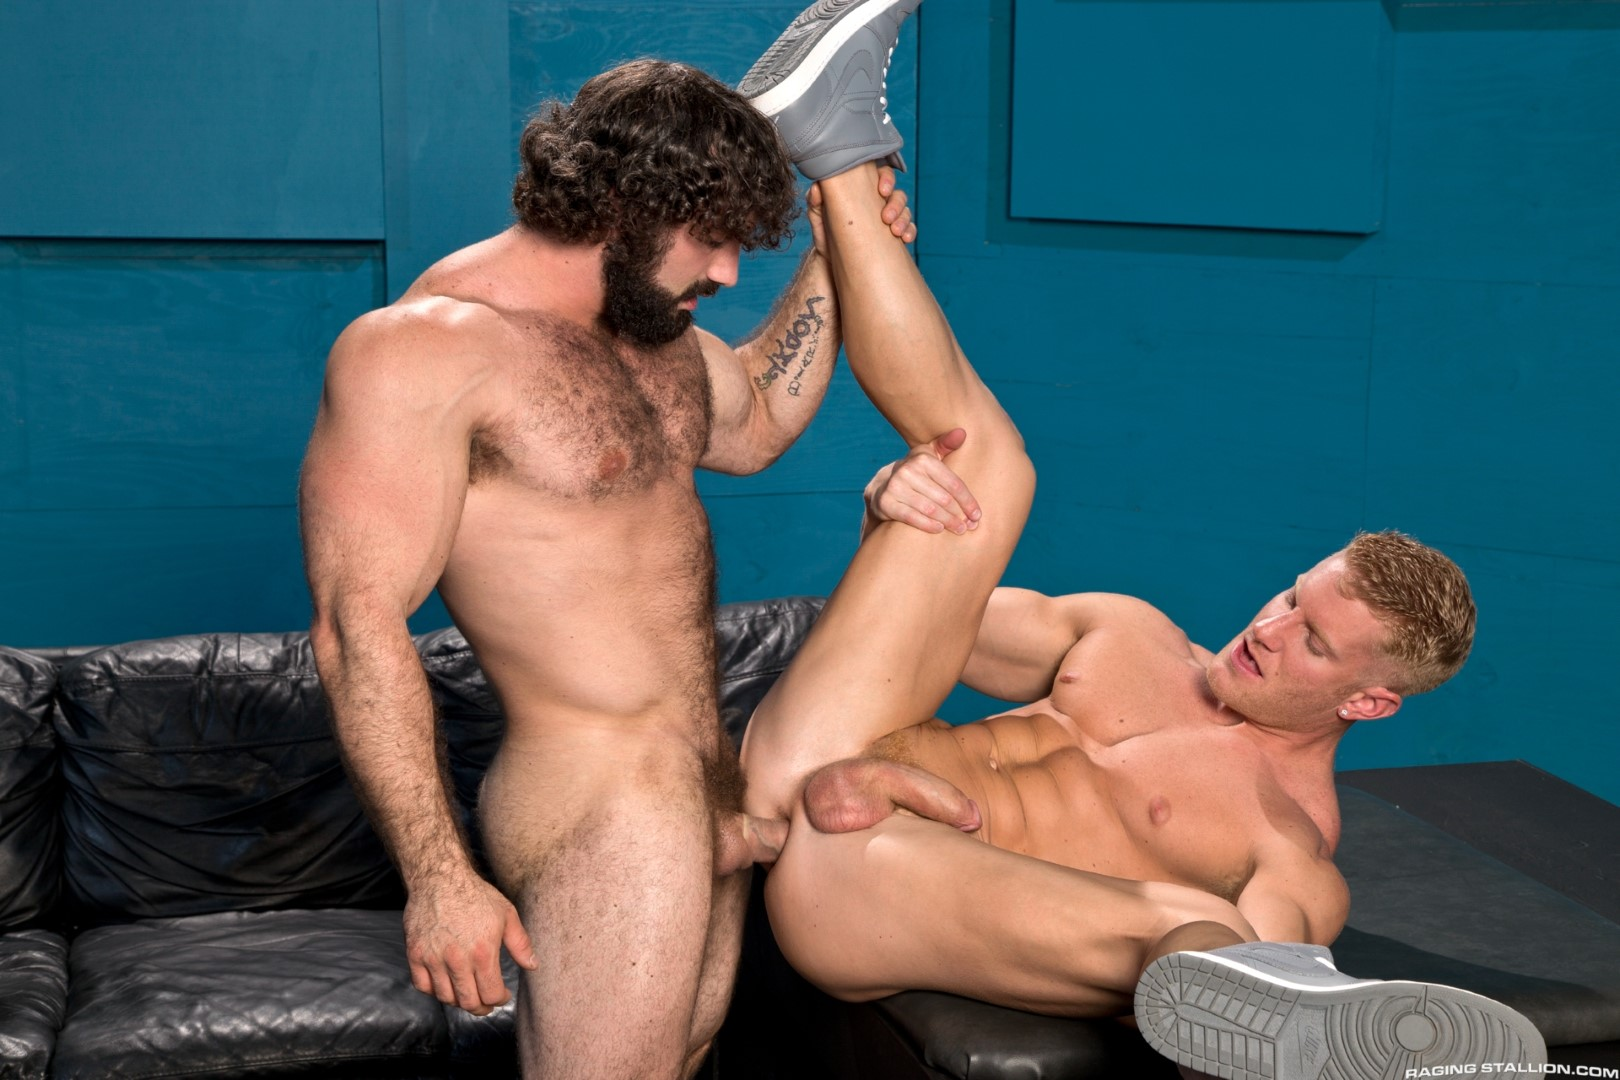 Raging-Stallion-Johnny-V-and-Jaxton-Wheeler-Hairy-Muscle-Hunk-Fucking-Amateur-Gay-Porn-09 Hairy Muscle Hunk Jaxton Wheeler Fucking A Muscle Jock